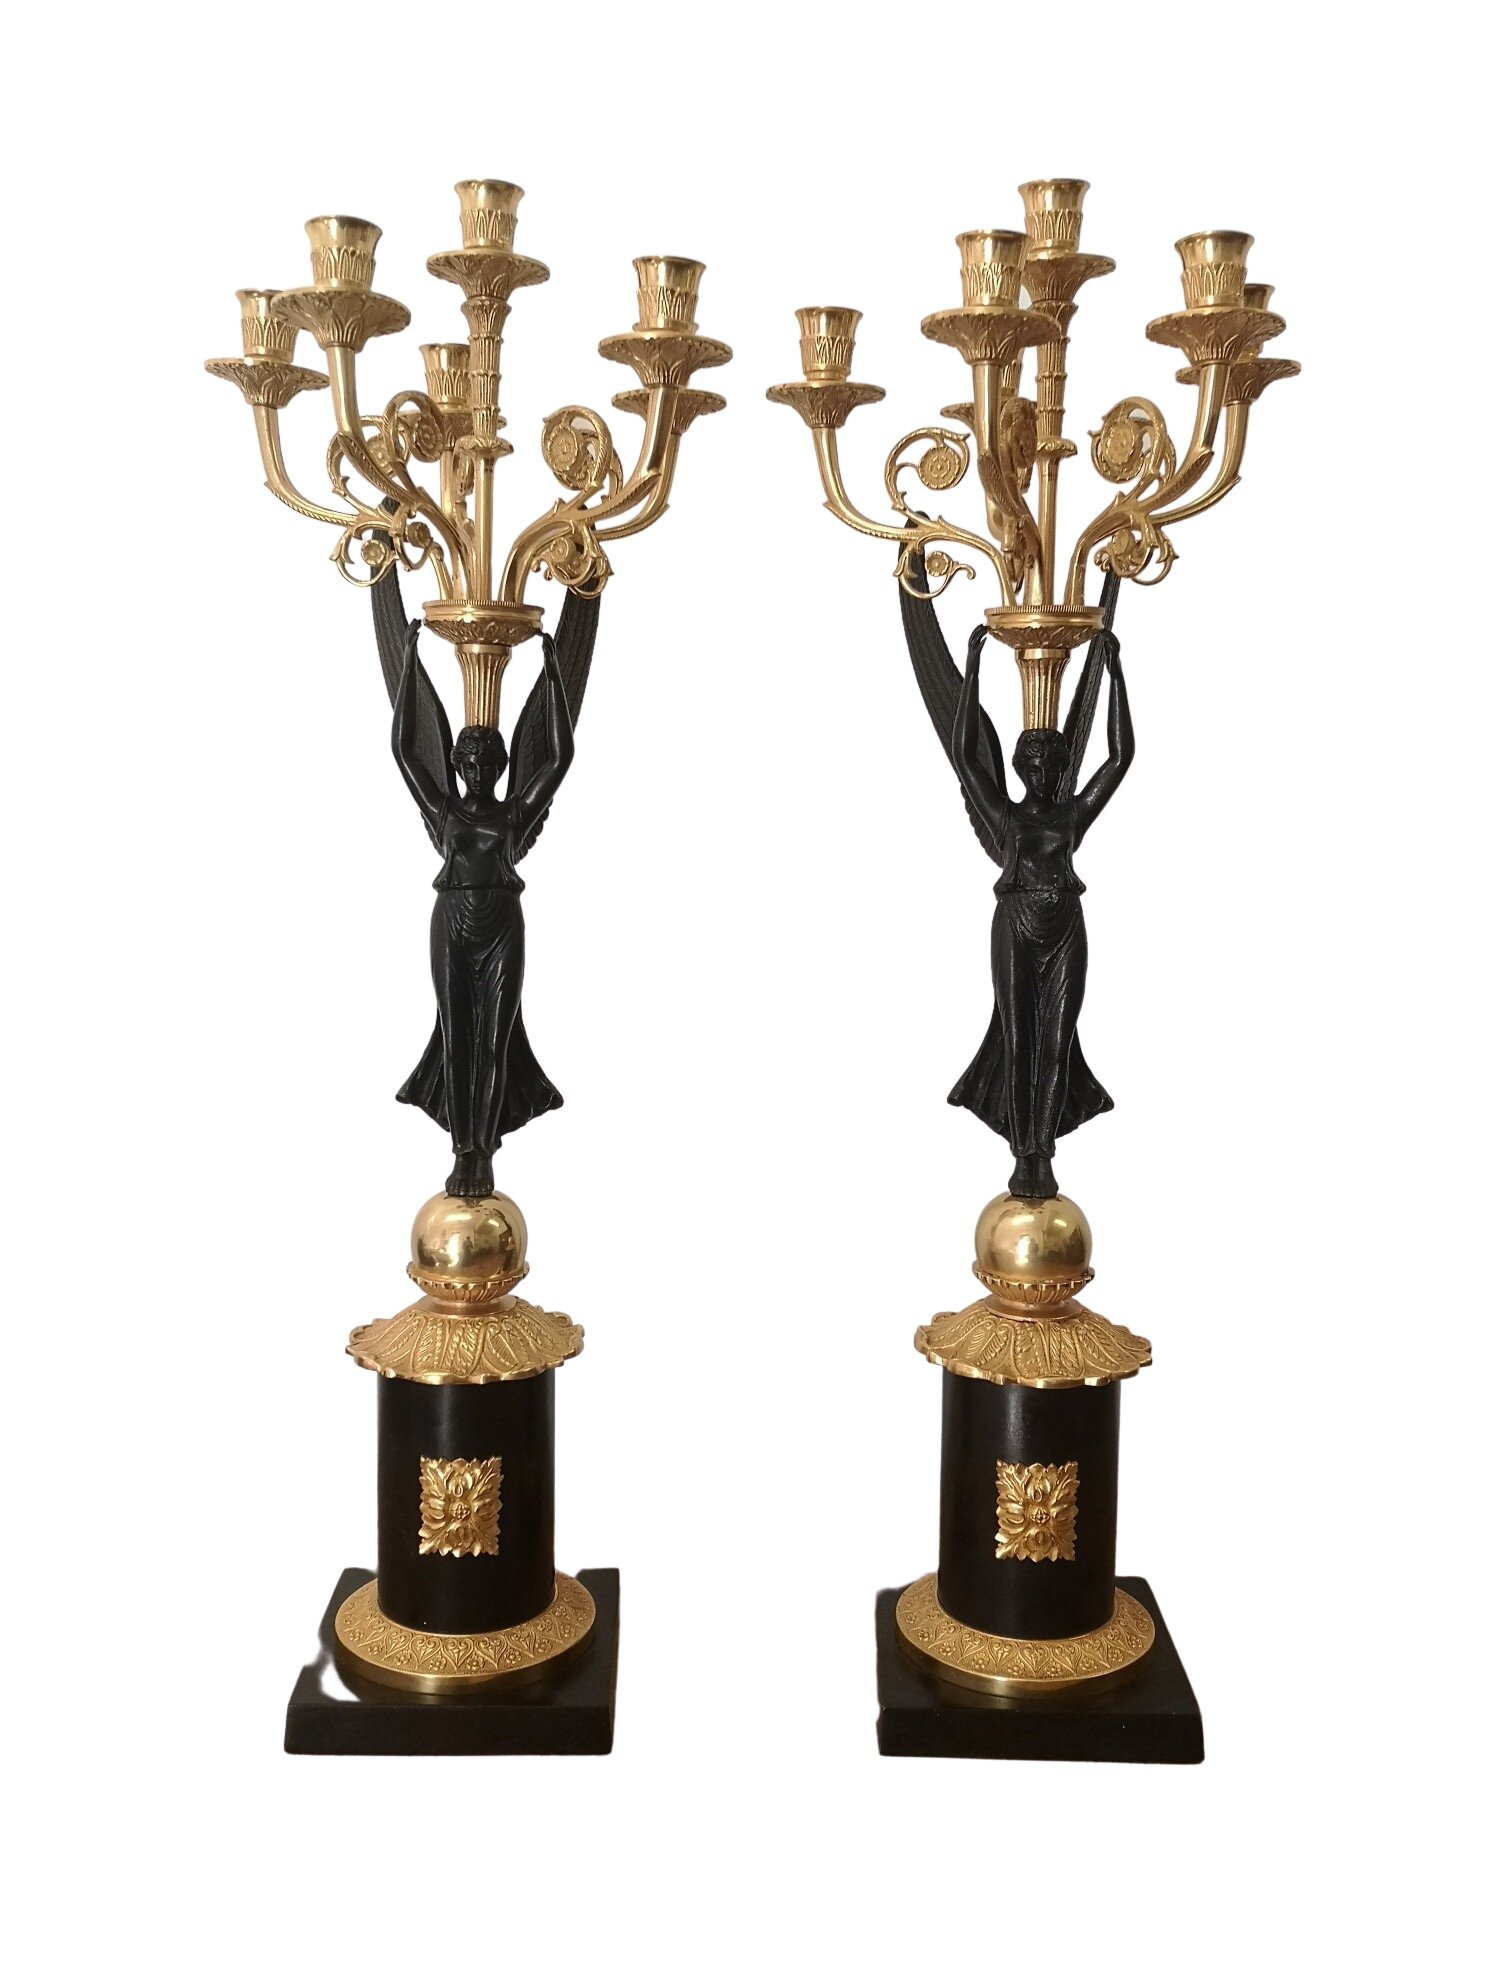 Pair Of 19th Century French Bronze And Gilt Candelabras